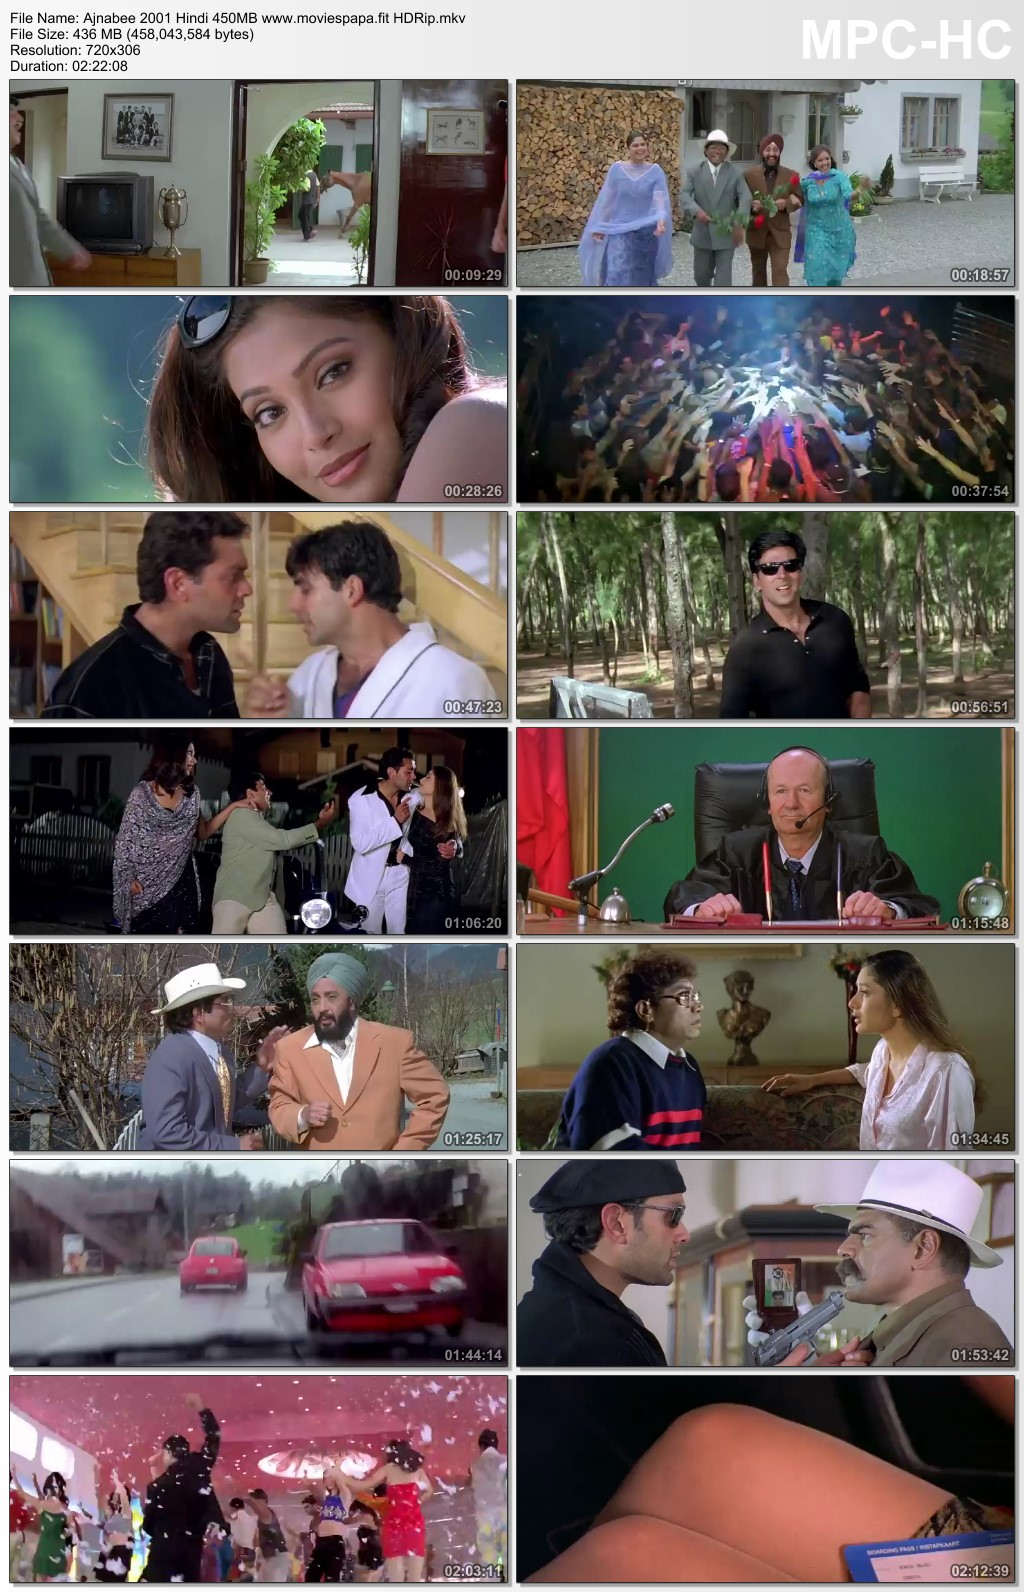 Ajnabee 2001 Hindi Movie 400MB HDRip Download